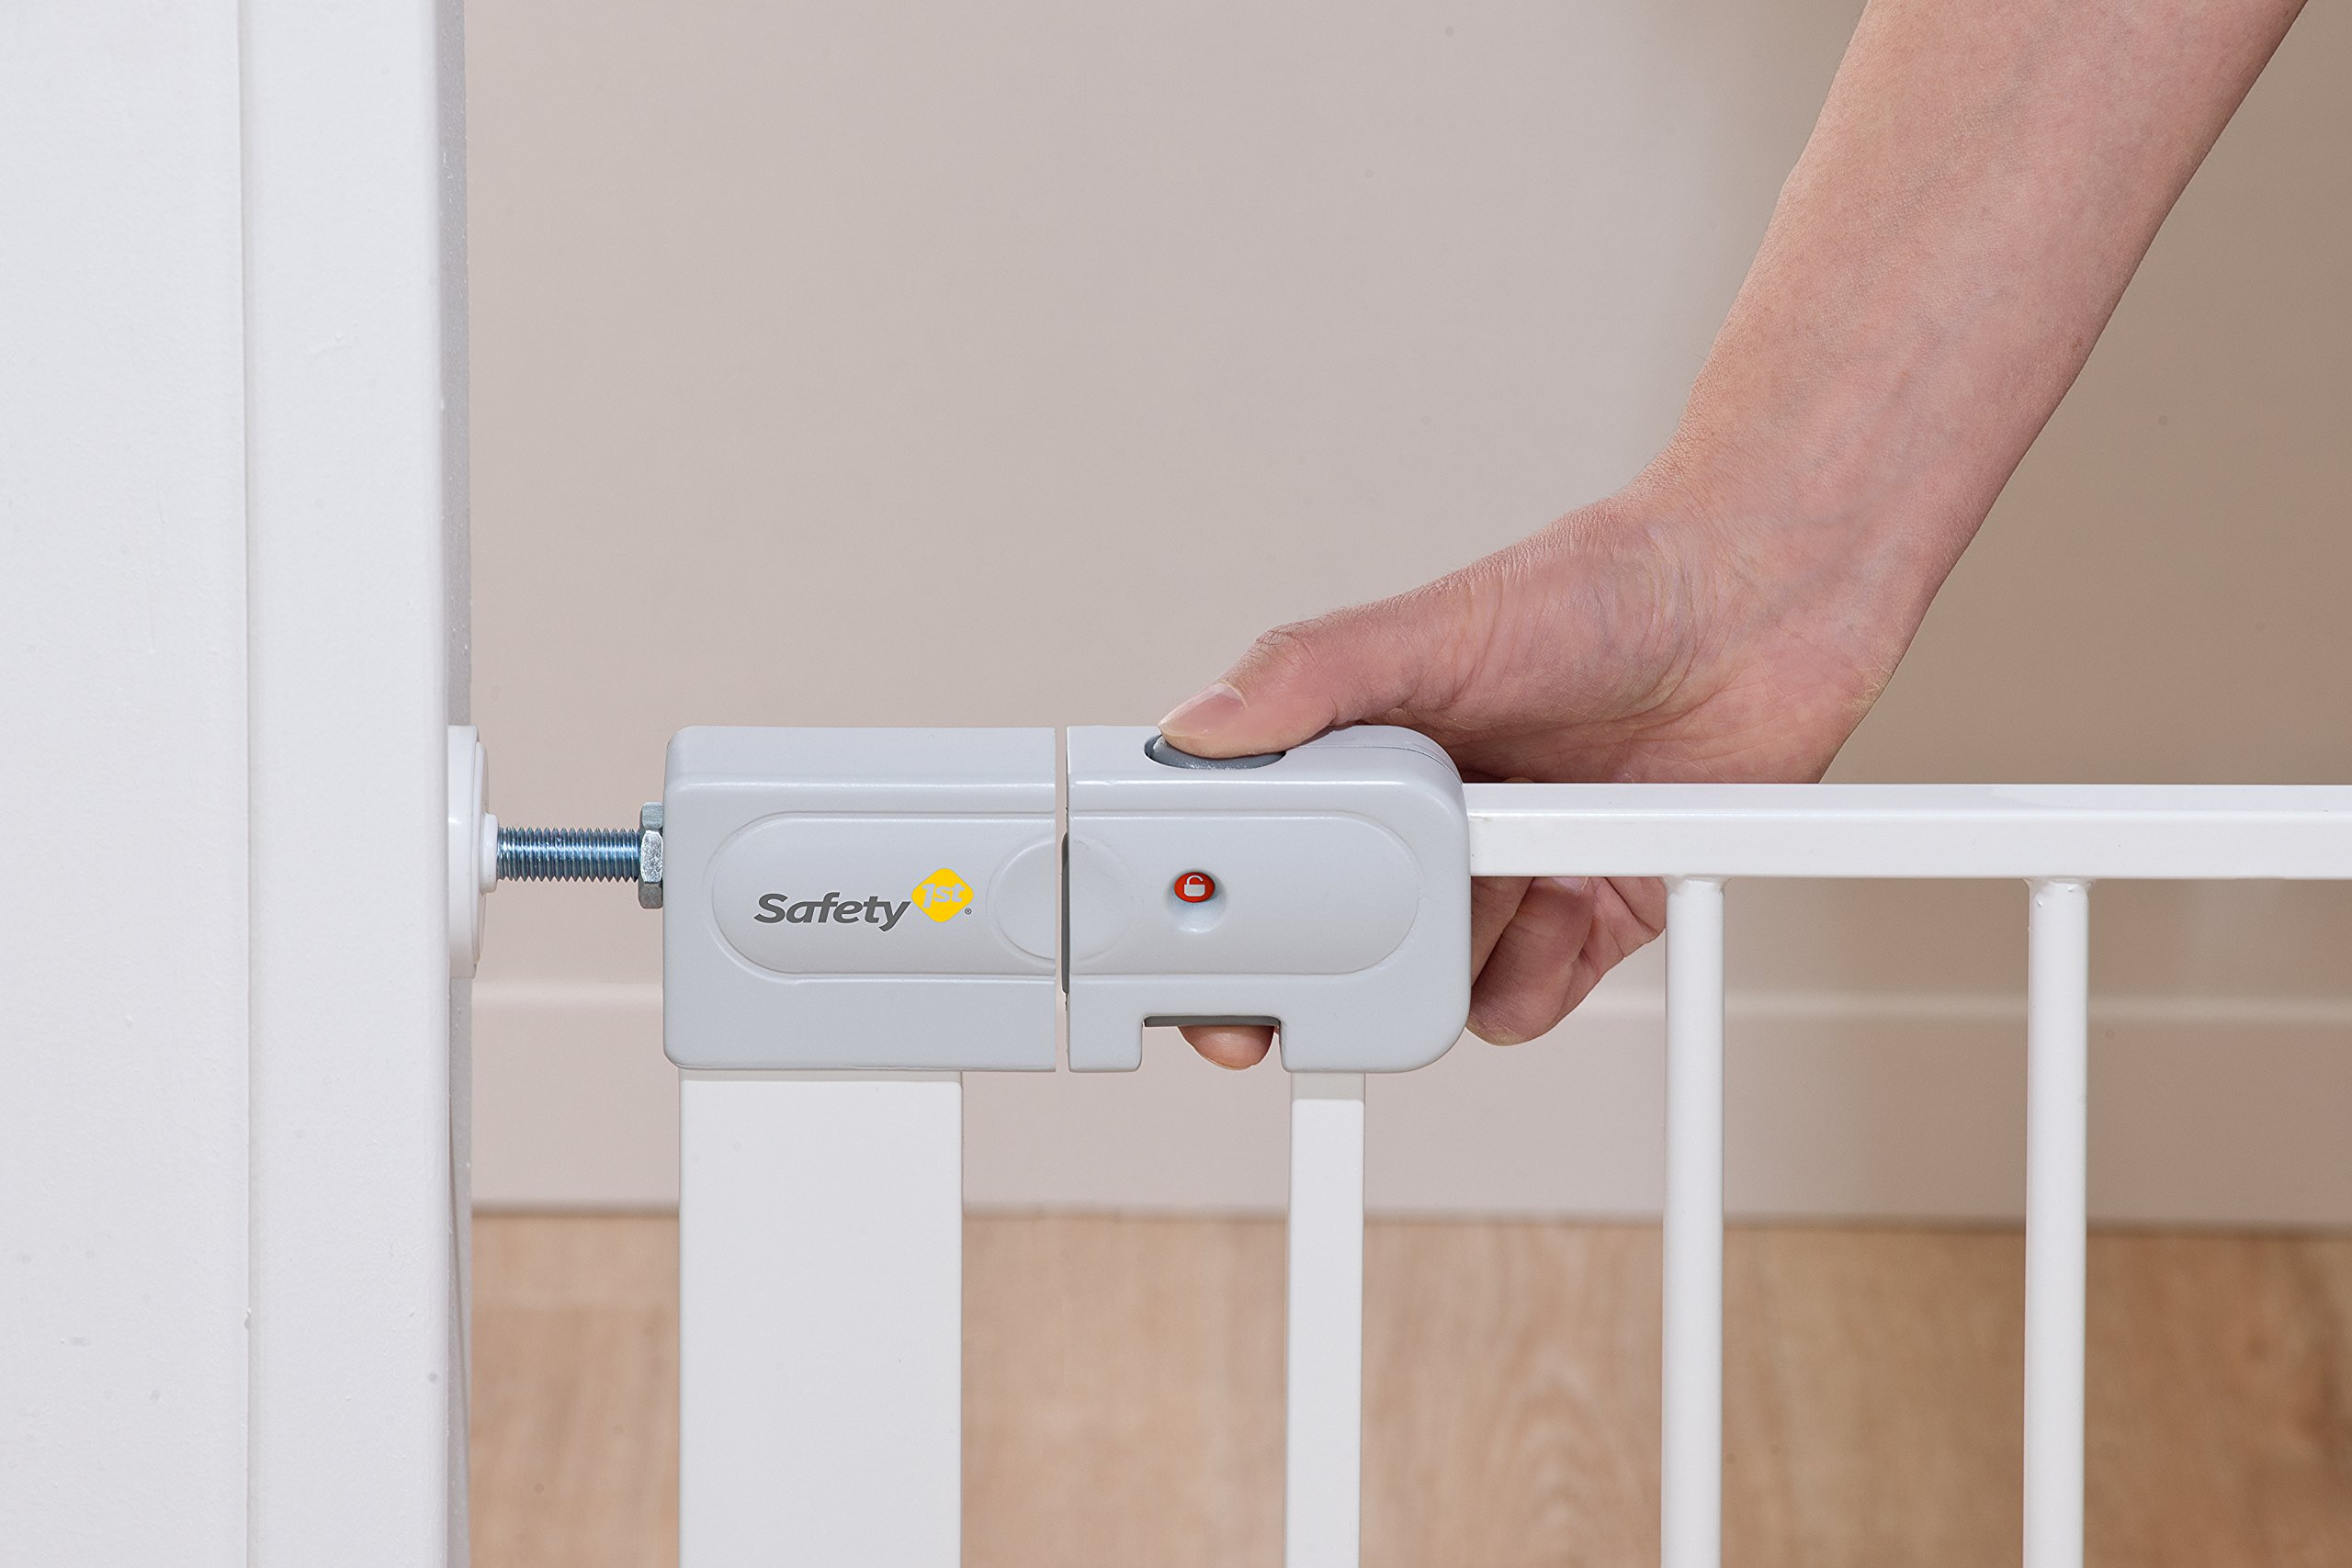 Safety 1st Securtech Auto Close Metal Gate, White  'True' Auto Close Gate which automatically closes for all opening angles Adjusts to fit openings from 73 cm to 80 cm Extends up to 136 cm with separately available extensions 4